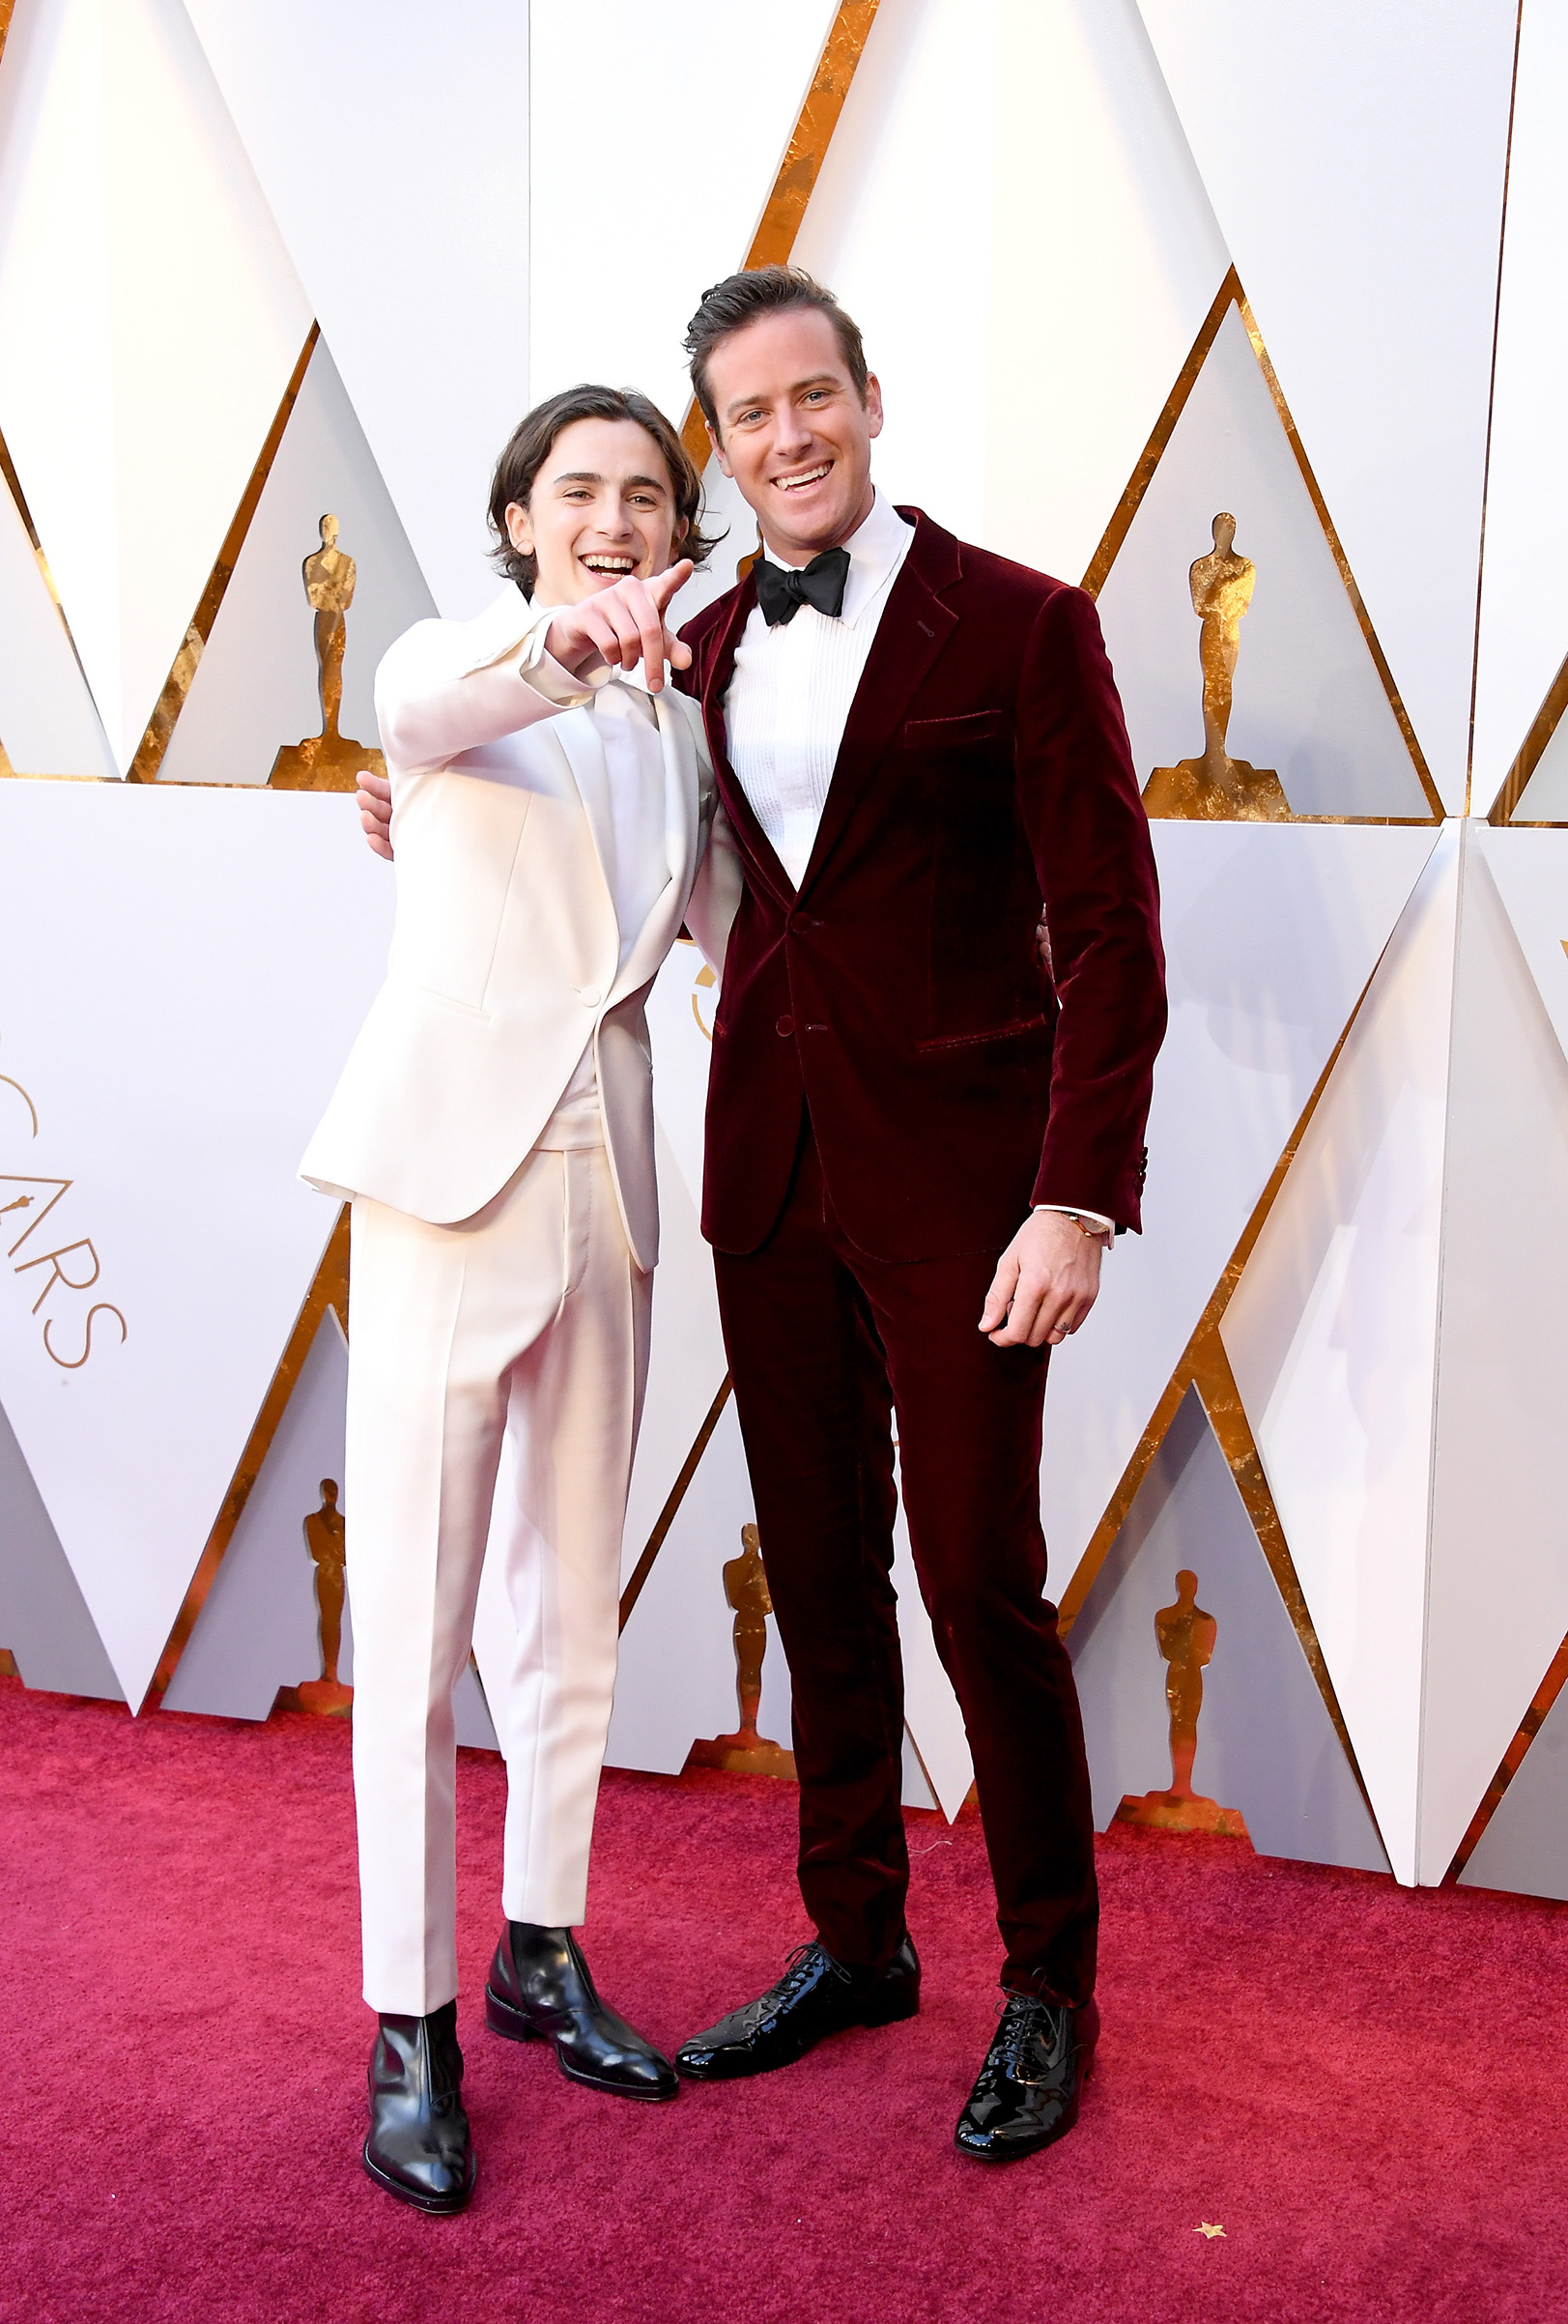 Timothee Chalamet and Armie Hammer attend the 90th Annual Academy Awards at Hollywood & Highland Center on March 4.